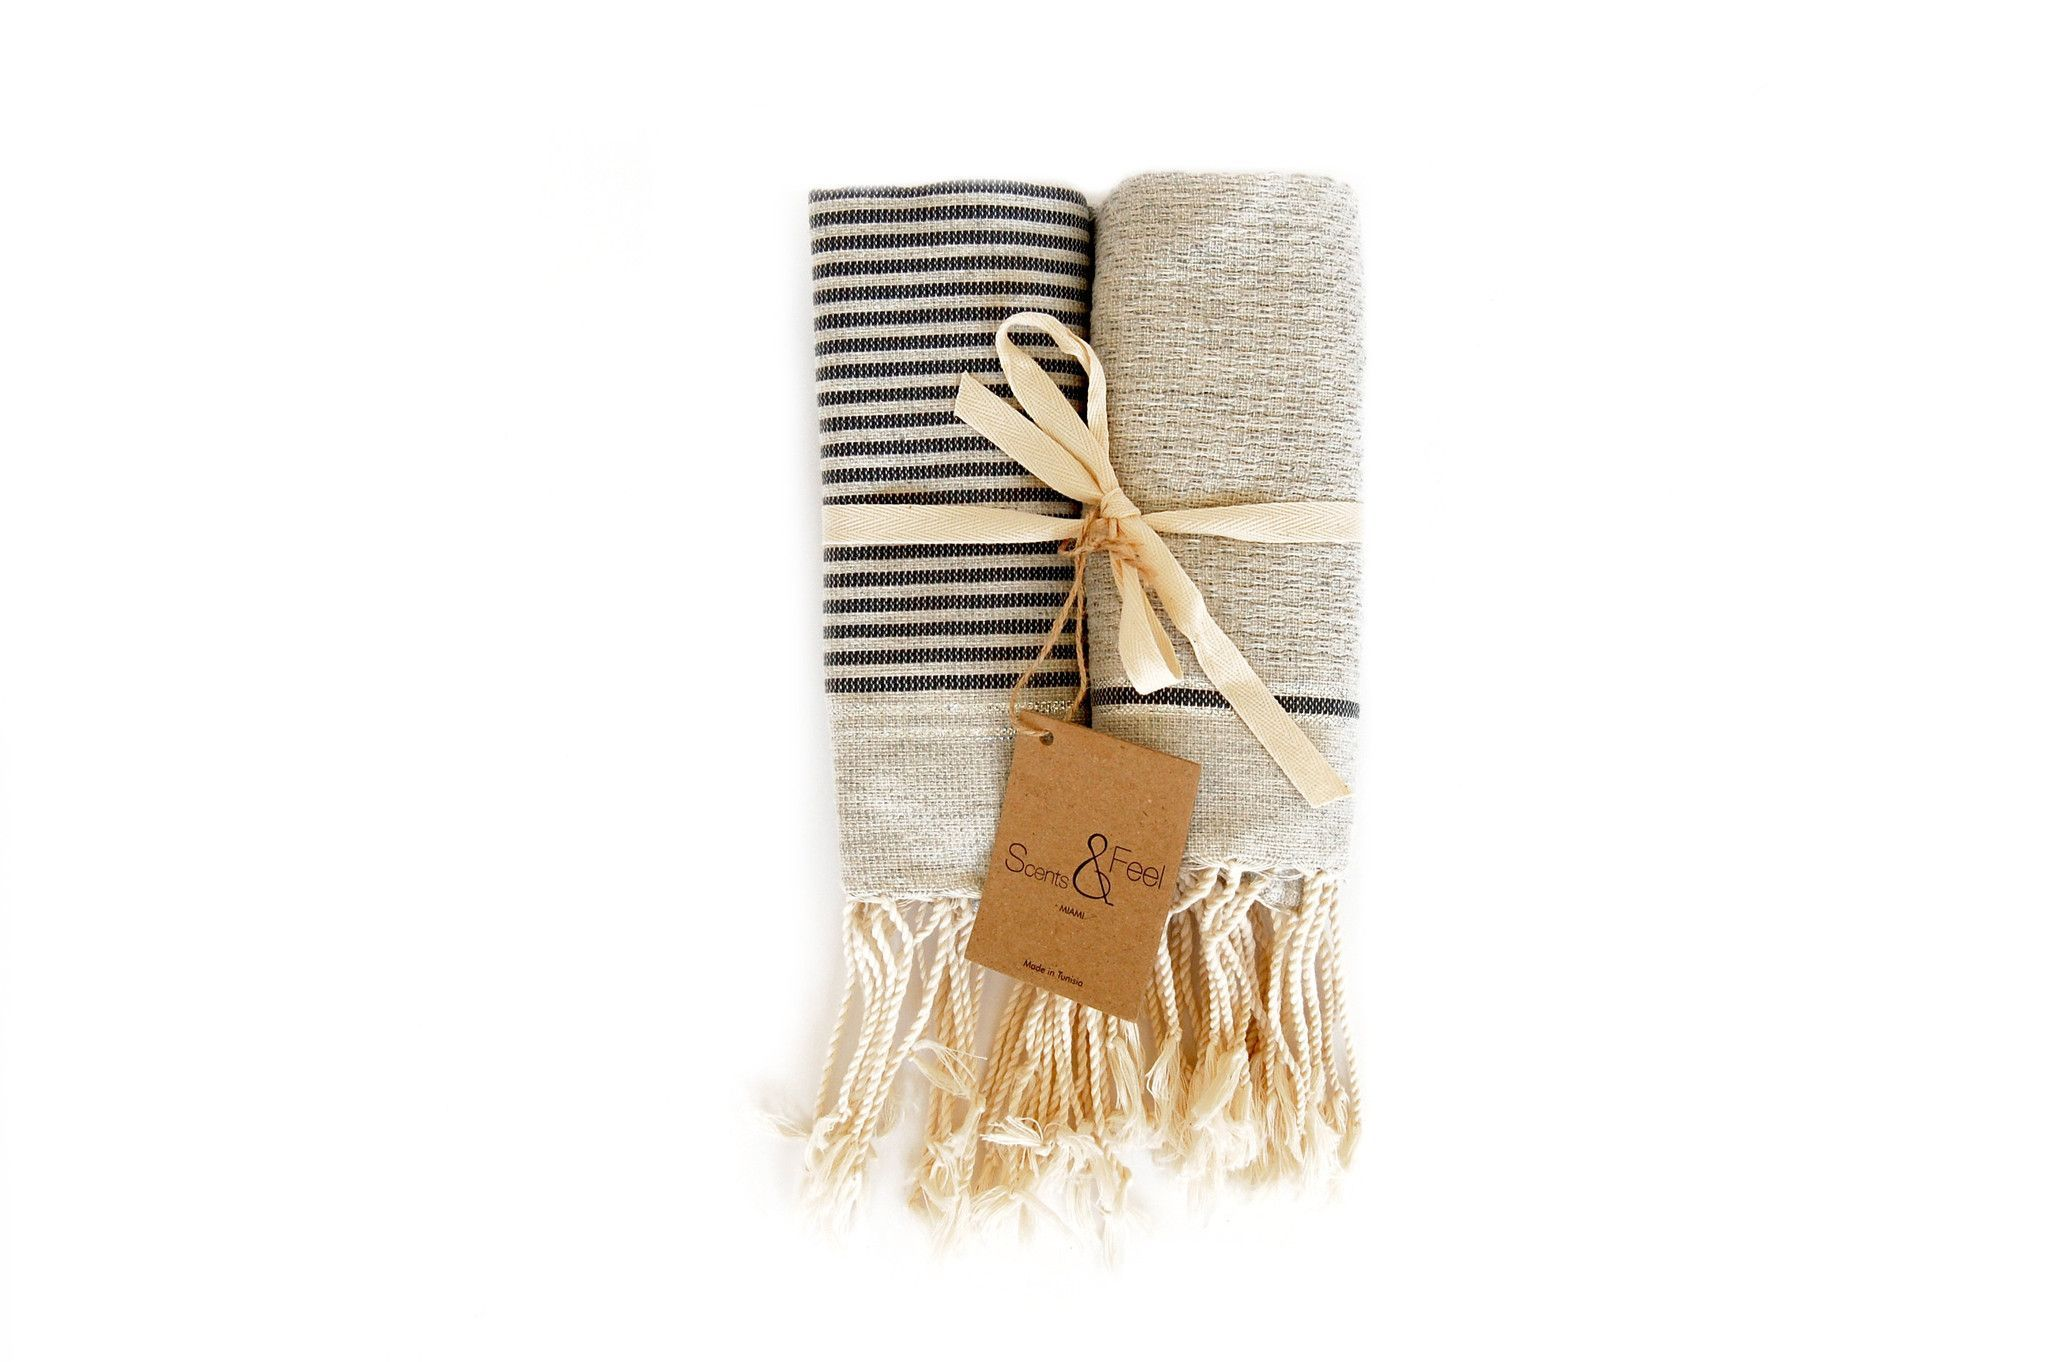 Pair of Fouta Guest Towels, Gray + Dark Gray